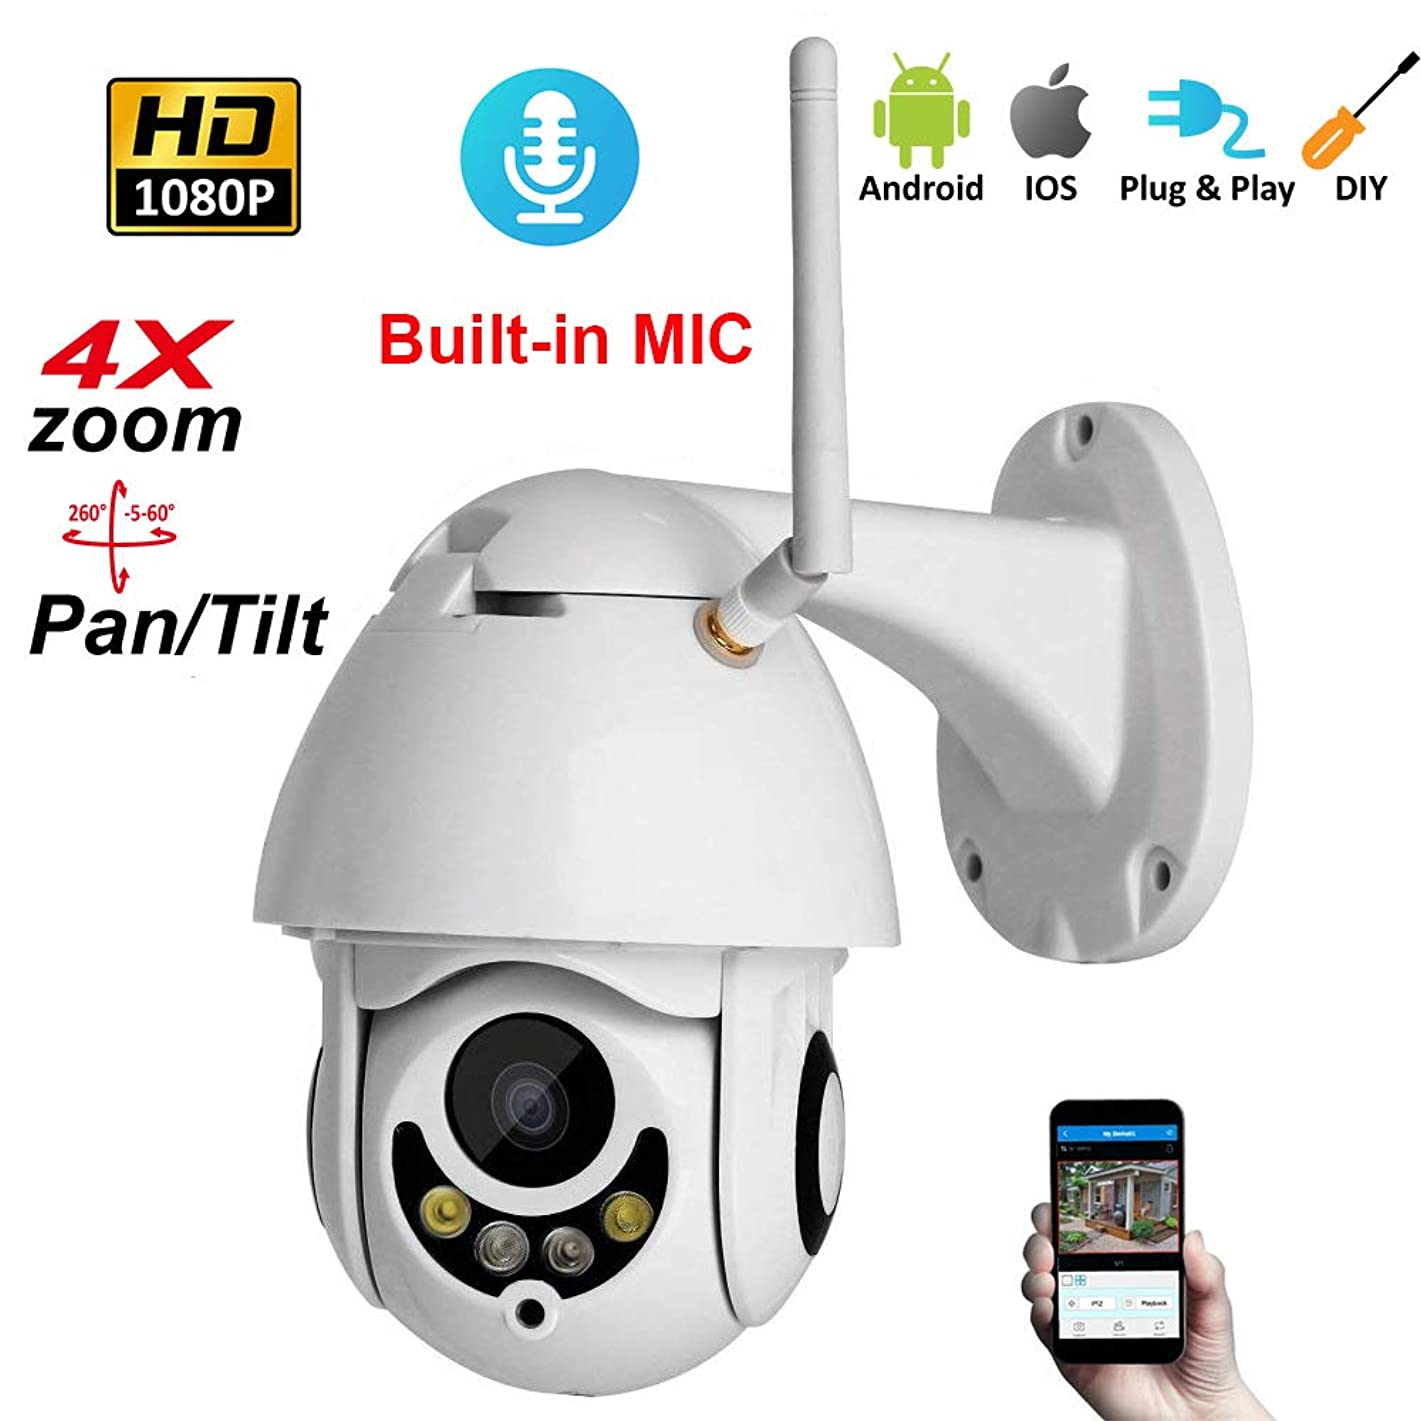 PYXZQW 4X Zoom Camera Hd Ipc Outdoor Waterproof WiFi Remote Monitoring for Home Security System